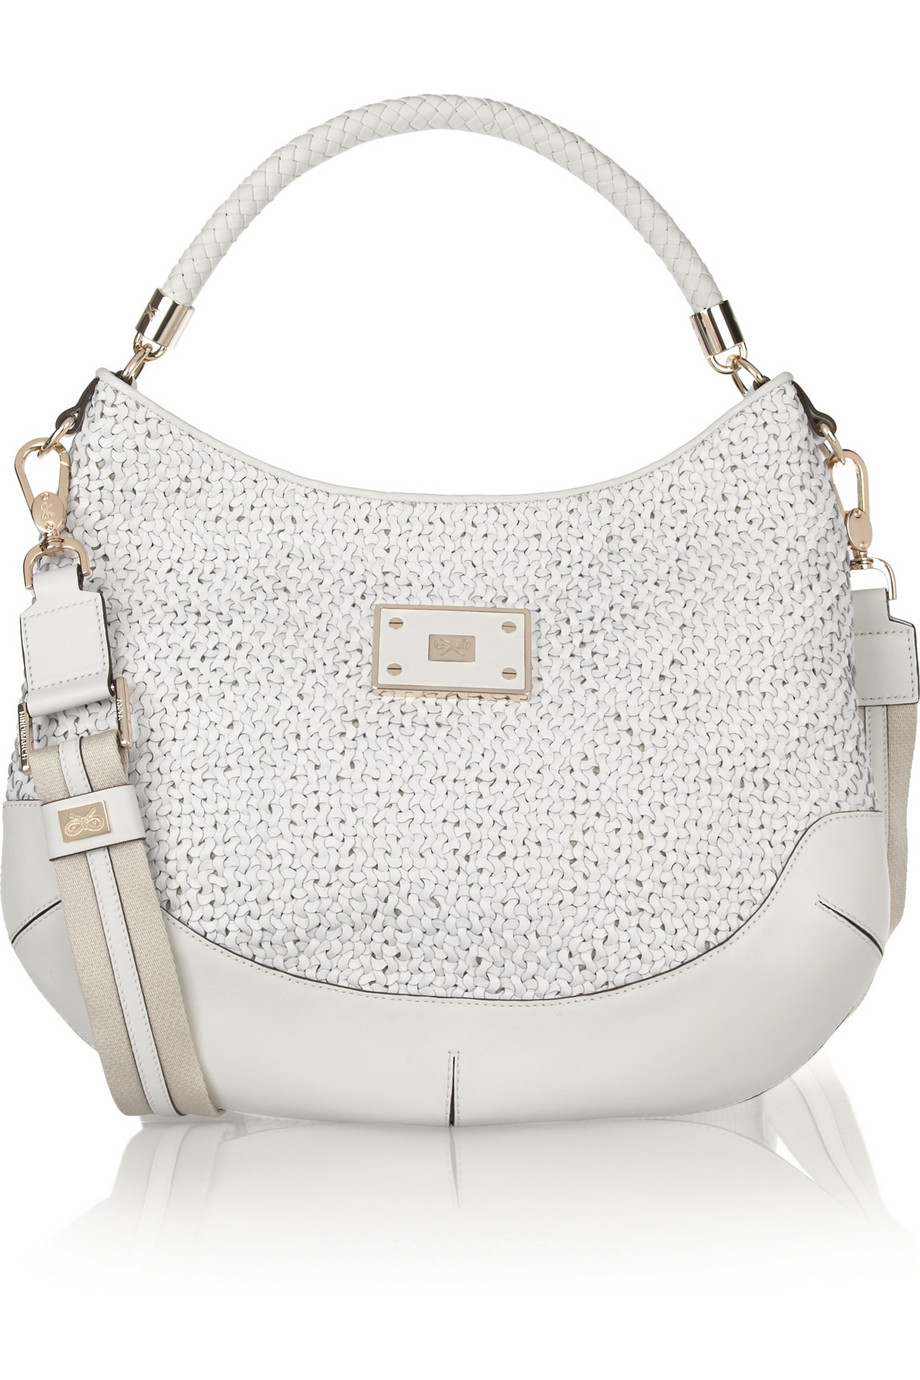 Anya hindmarch Jethro Woven Leather Shoulder Bag in White | Lyst